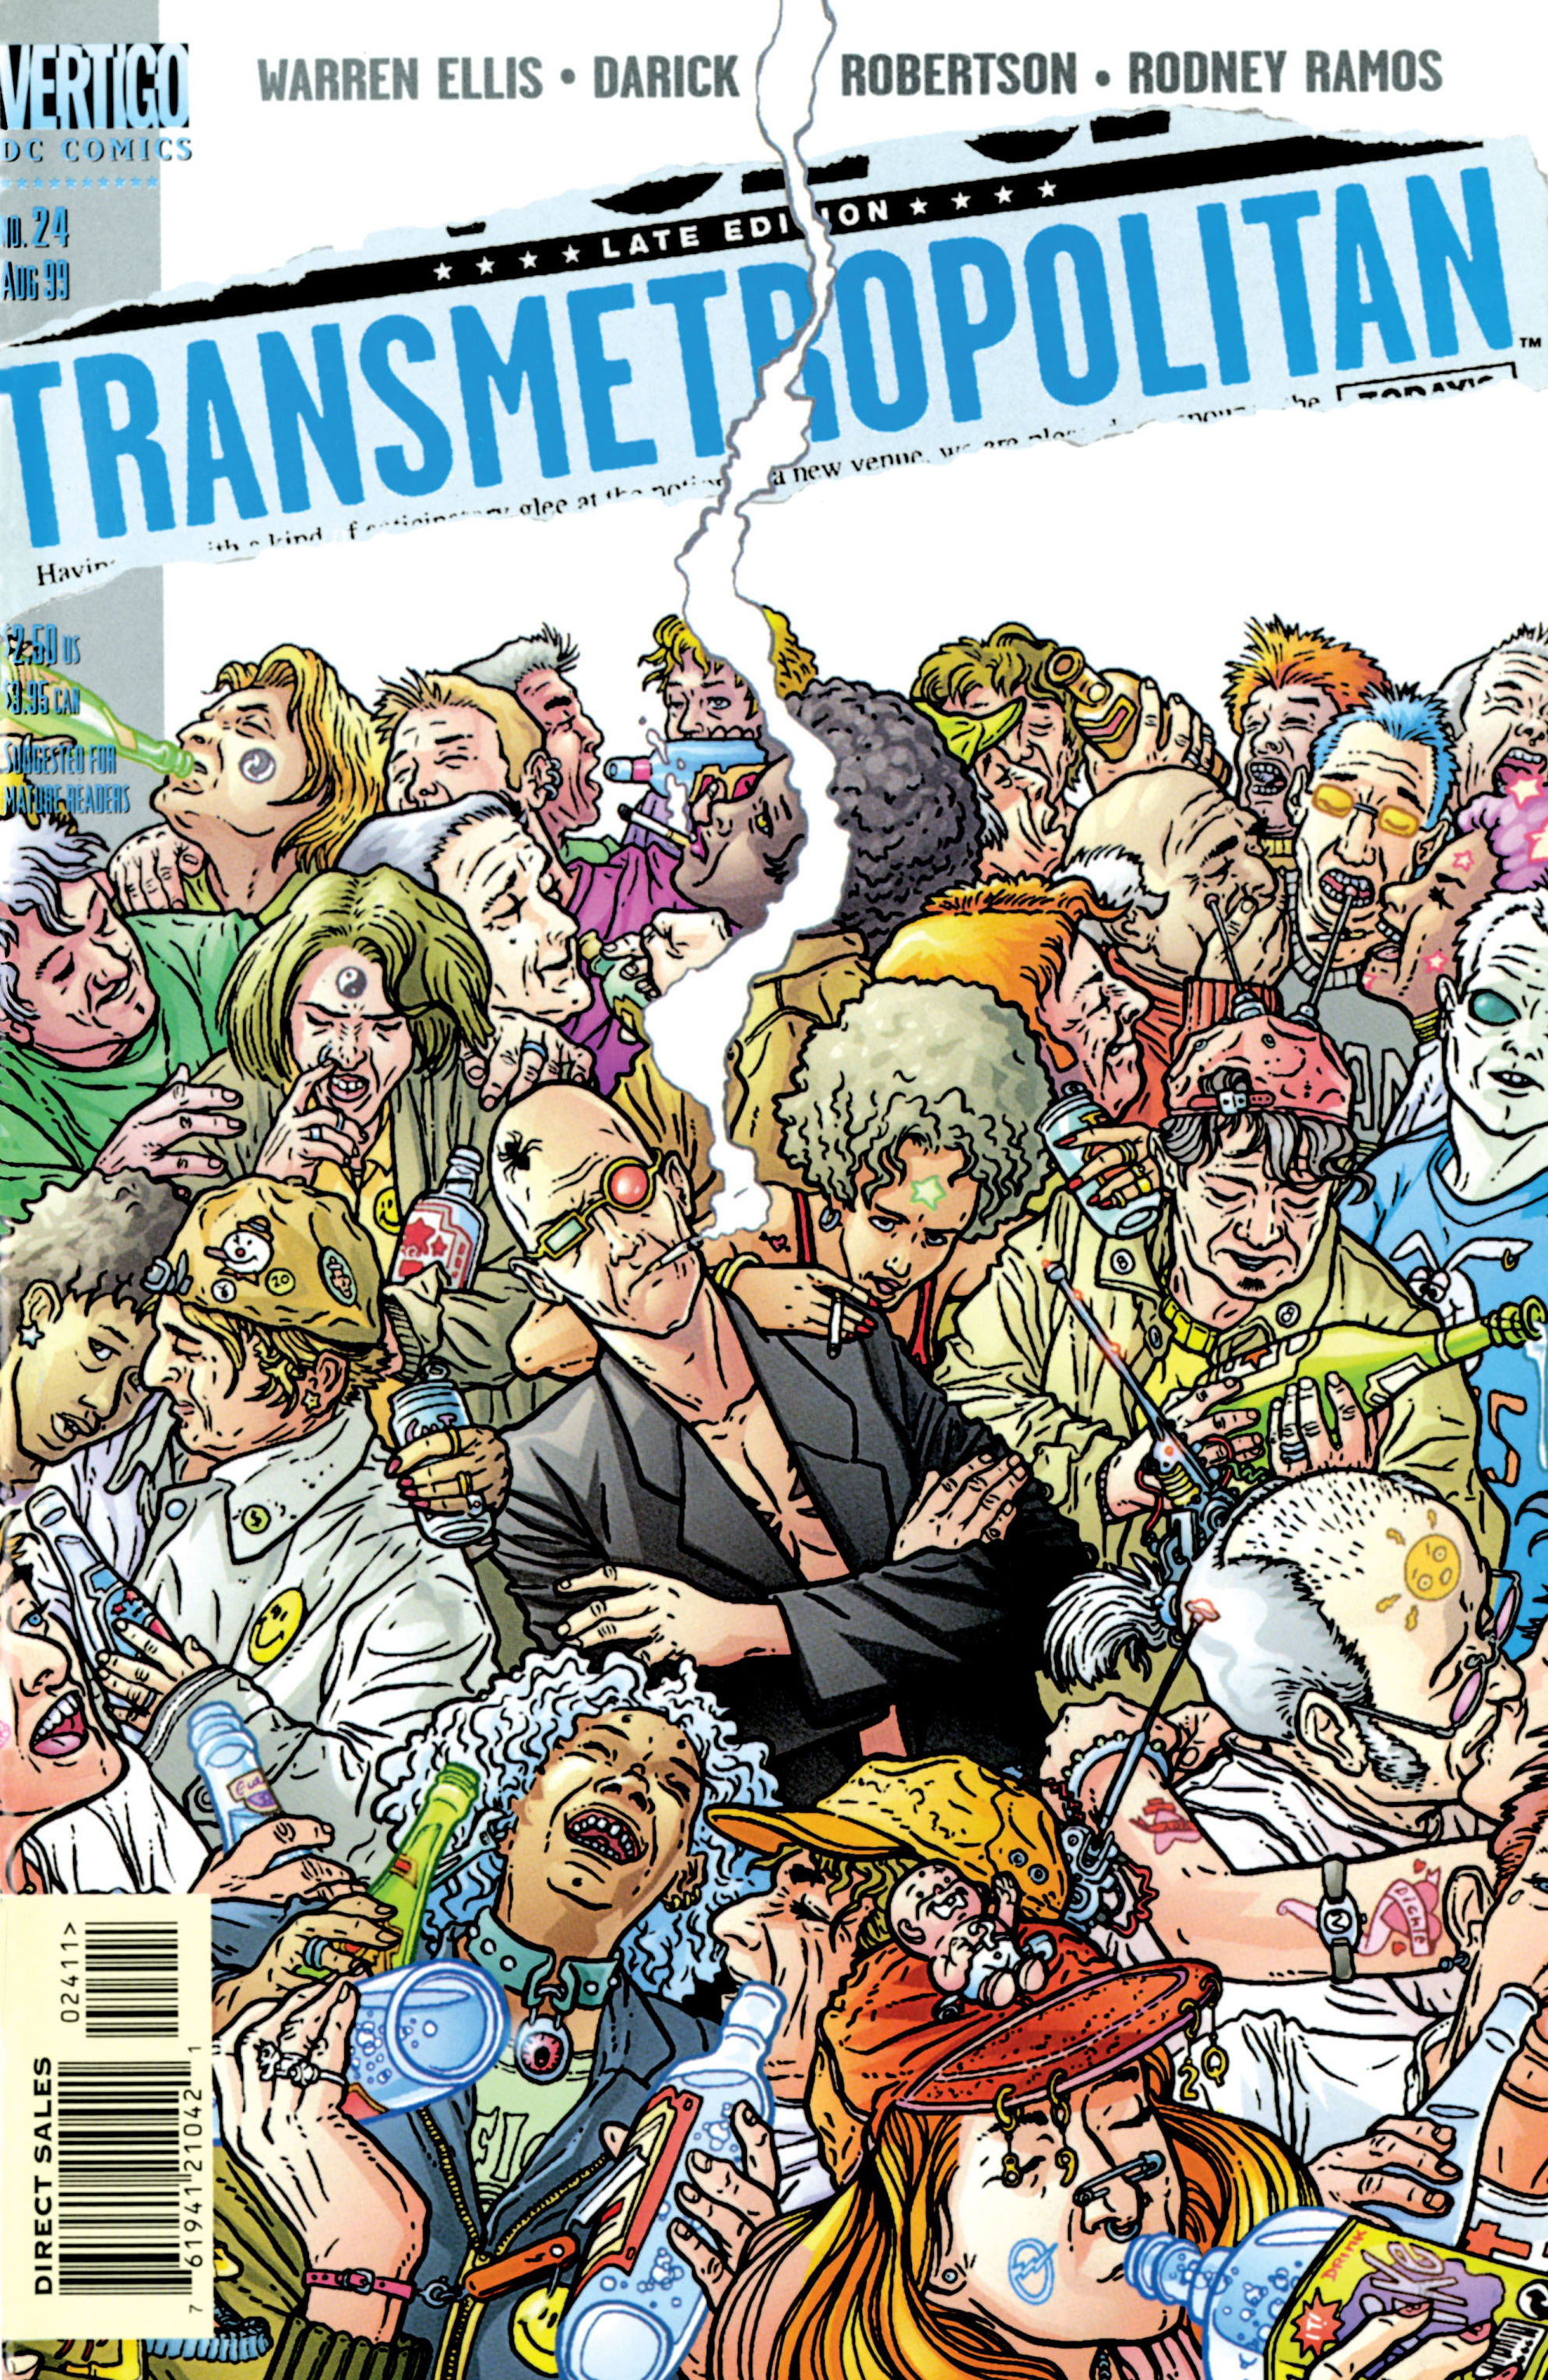 Read online Transmetropolitan comic -  Issue #24 - 1